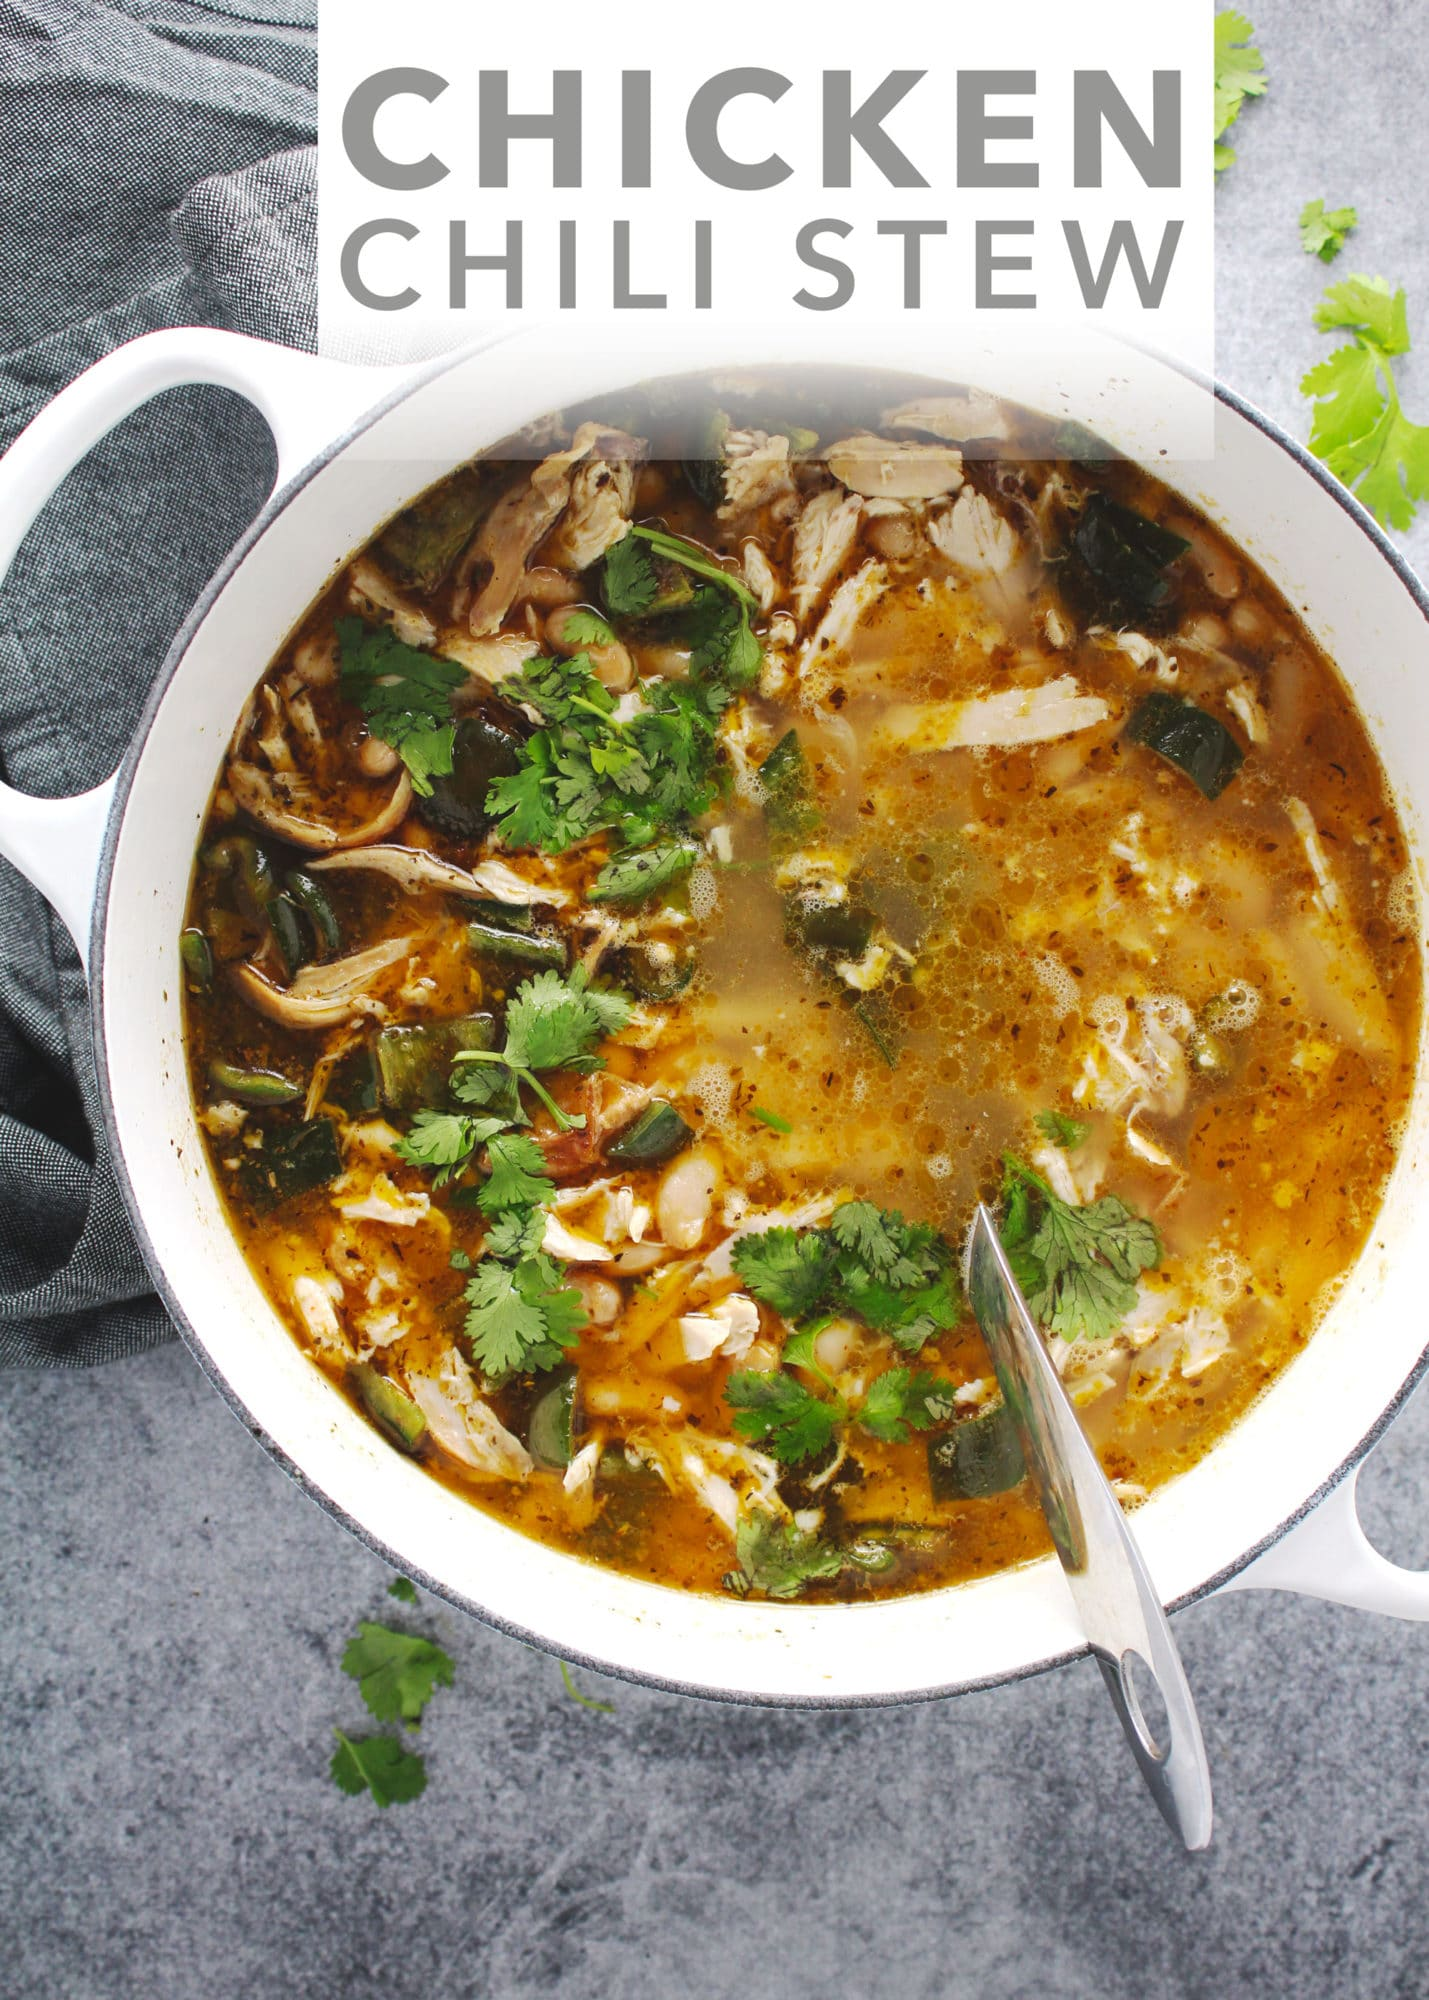 Make this into the low-sodium, gluten-free Chicken Chili Stew and then turn it into Nachos for a perfect weeknight meal that lasts all week long | via @AimeeMarsLiving | #ChickenStew #Chili #Nachos